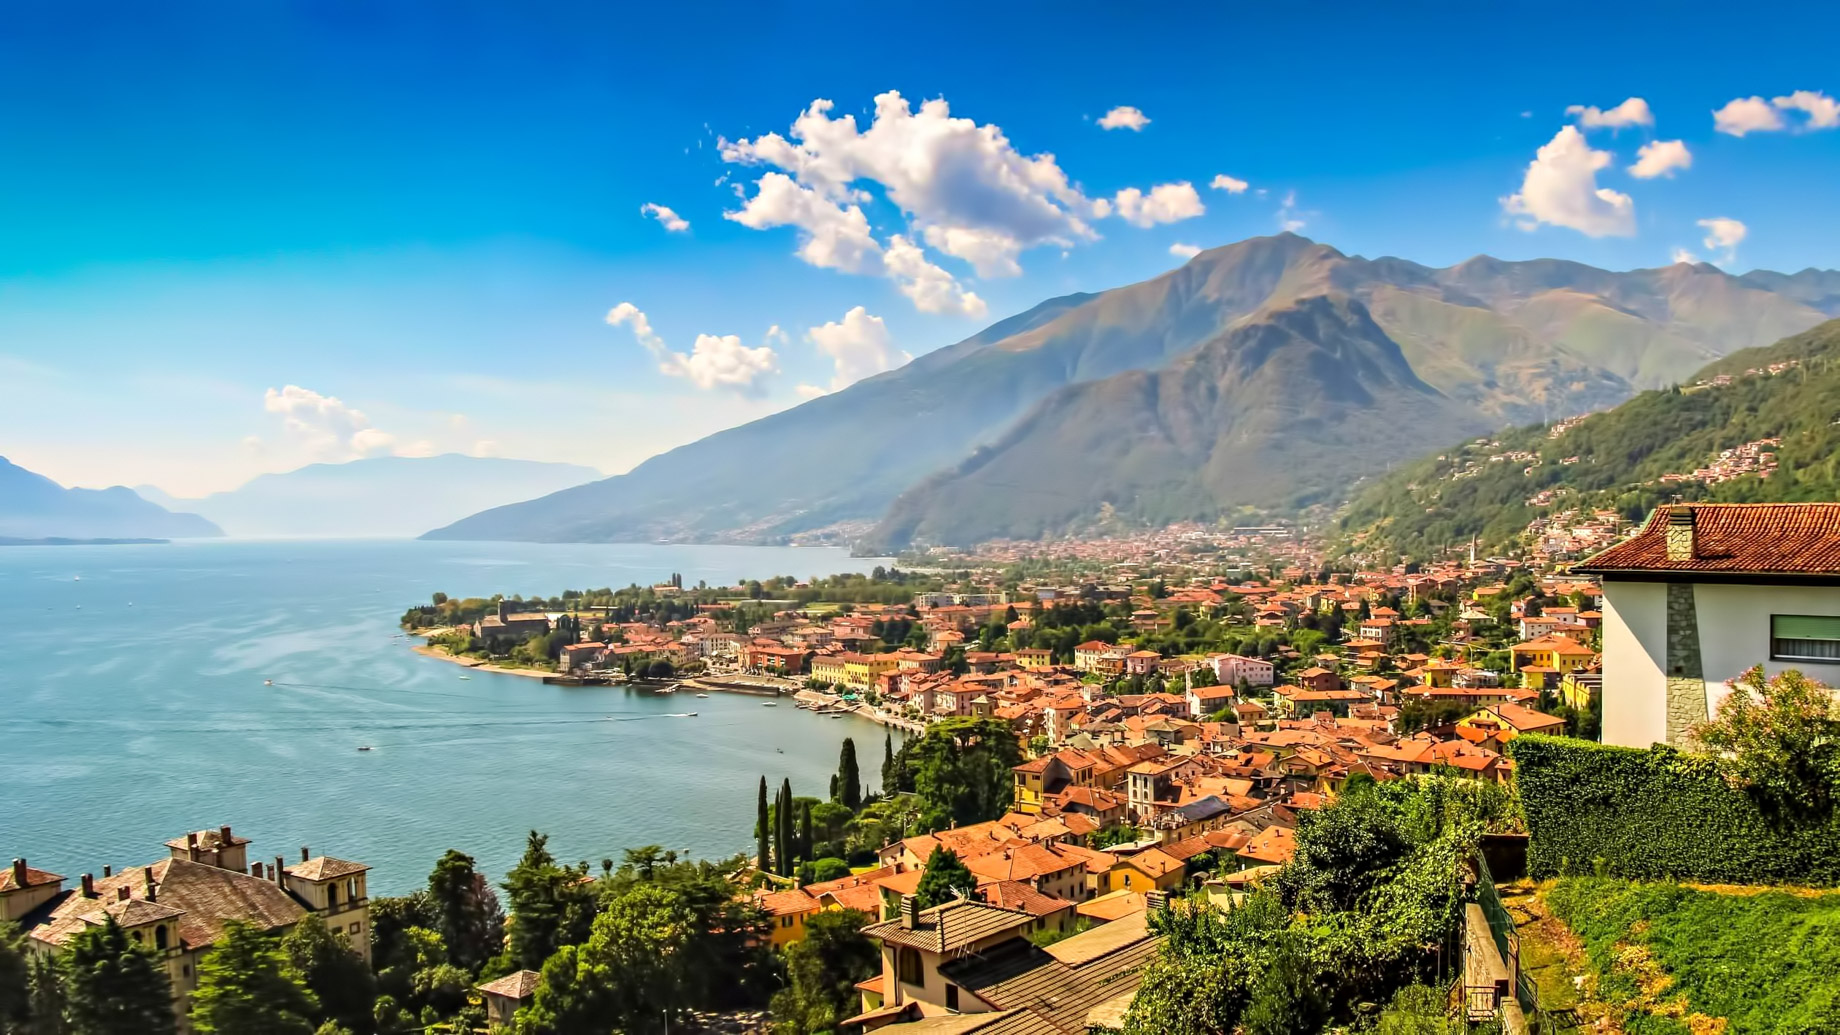 Lago di Como - Italy - The Most Exclusive European Resorts Locations to Buy a Holiday House